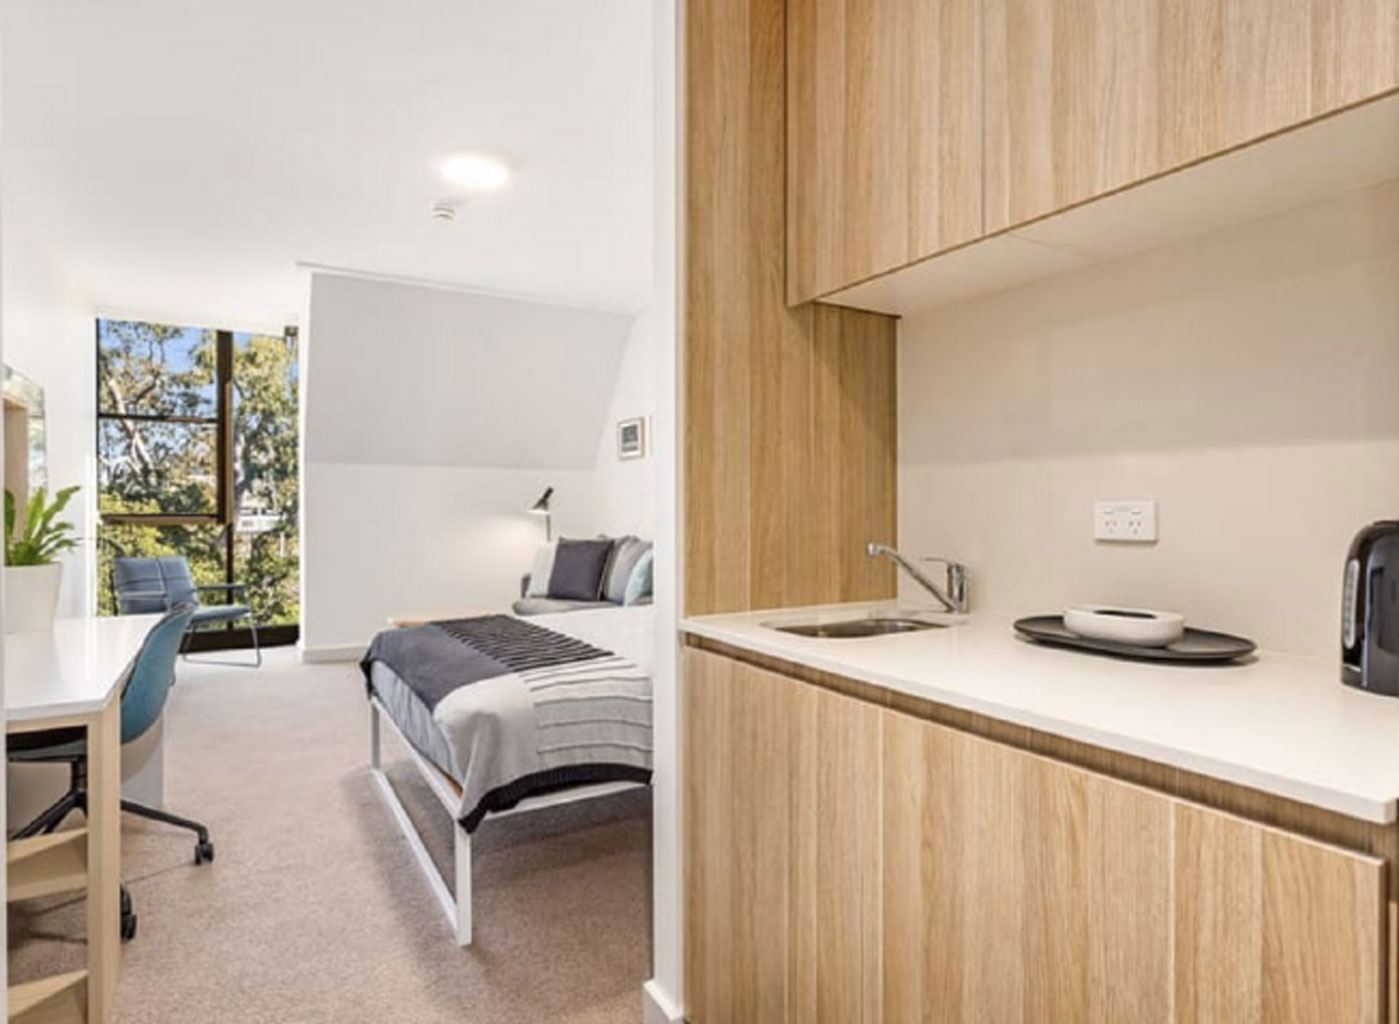 Studio rooms with kitchen facilities